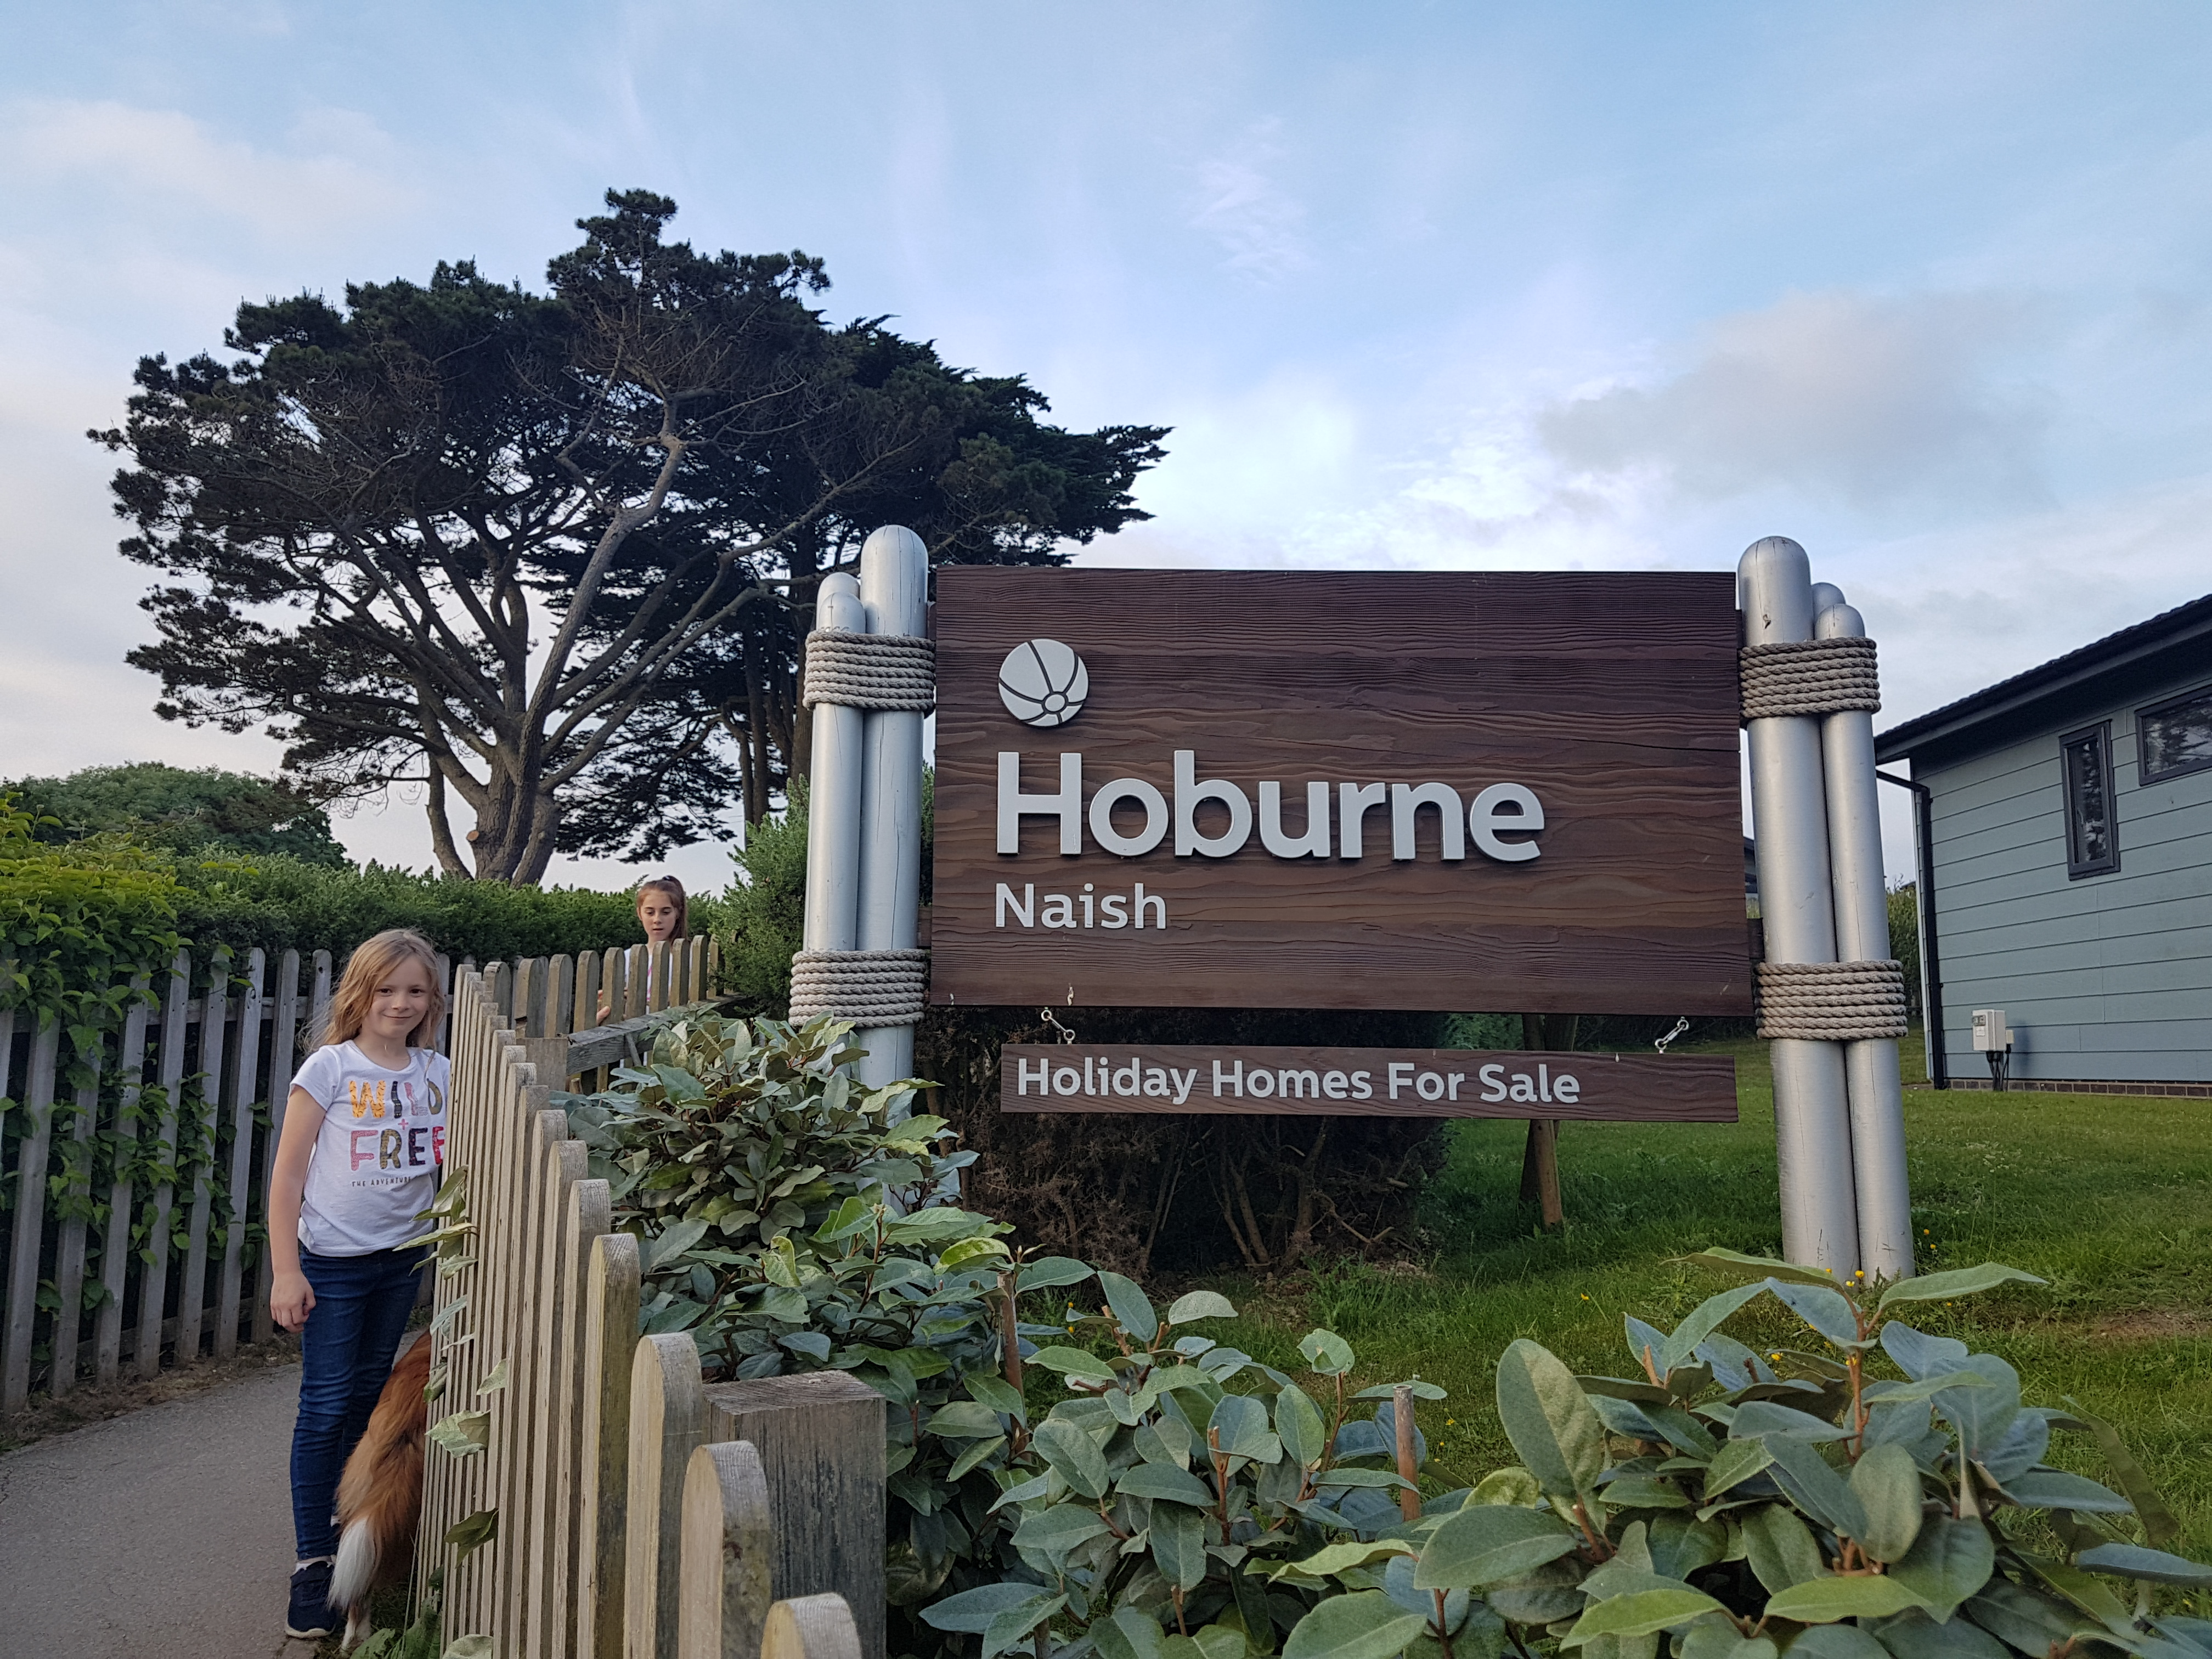 Hoburne Naish holiday park